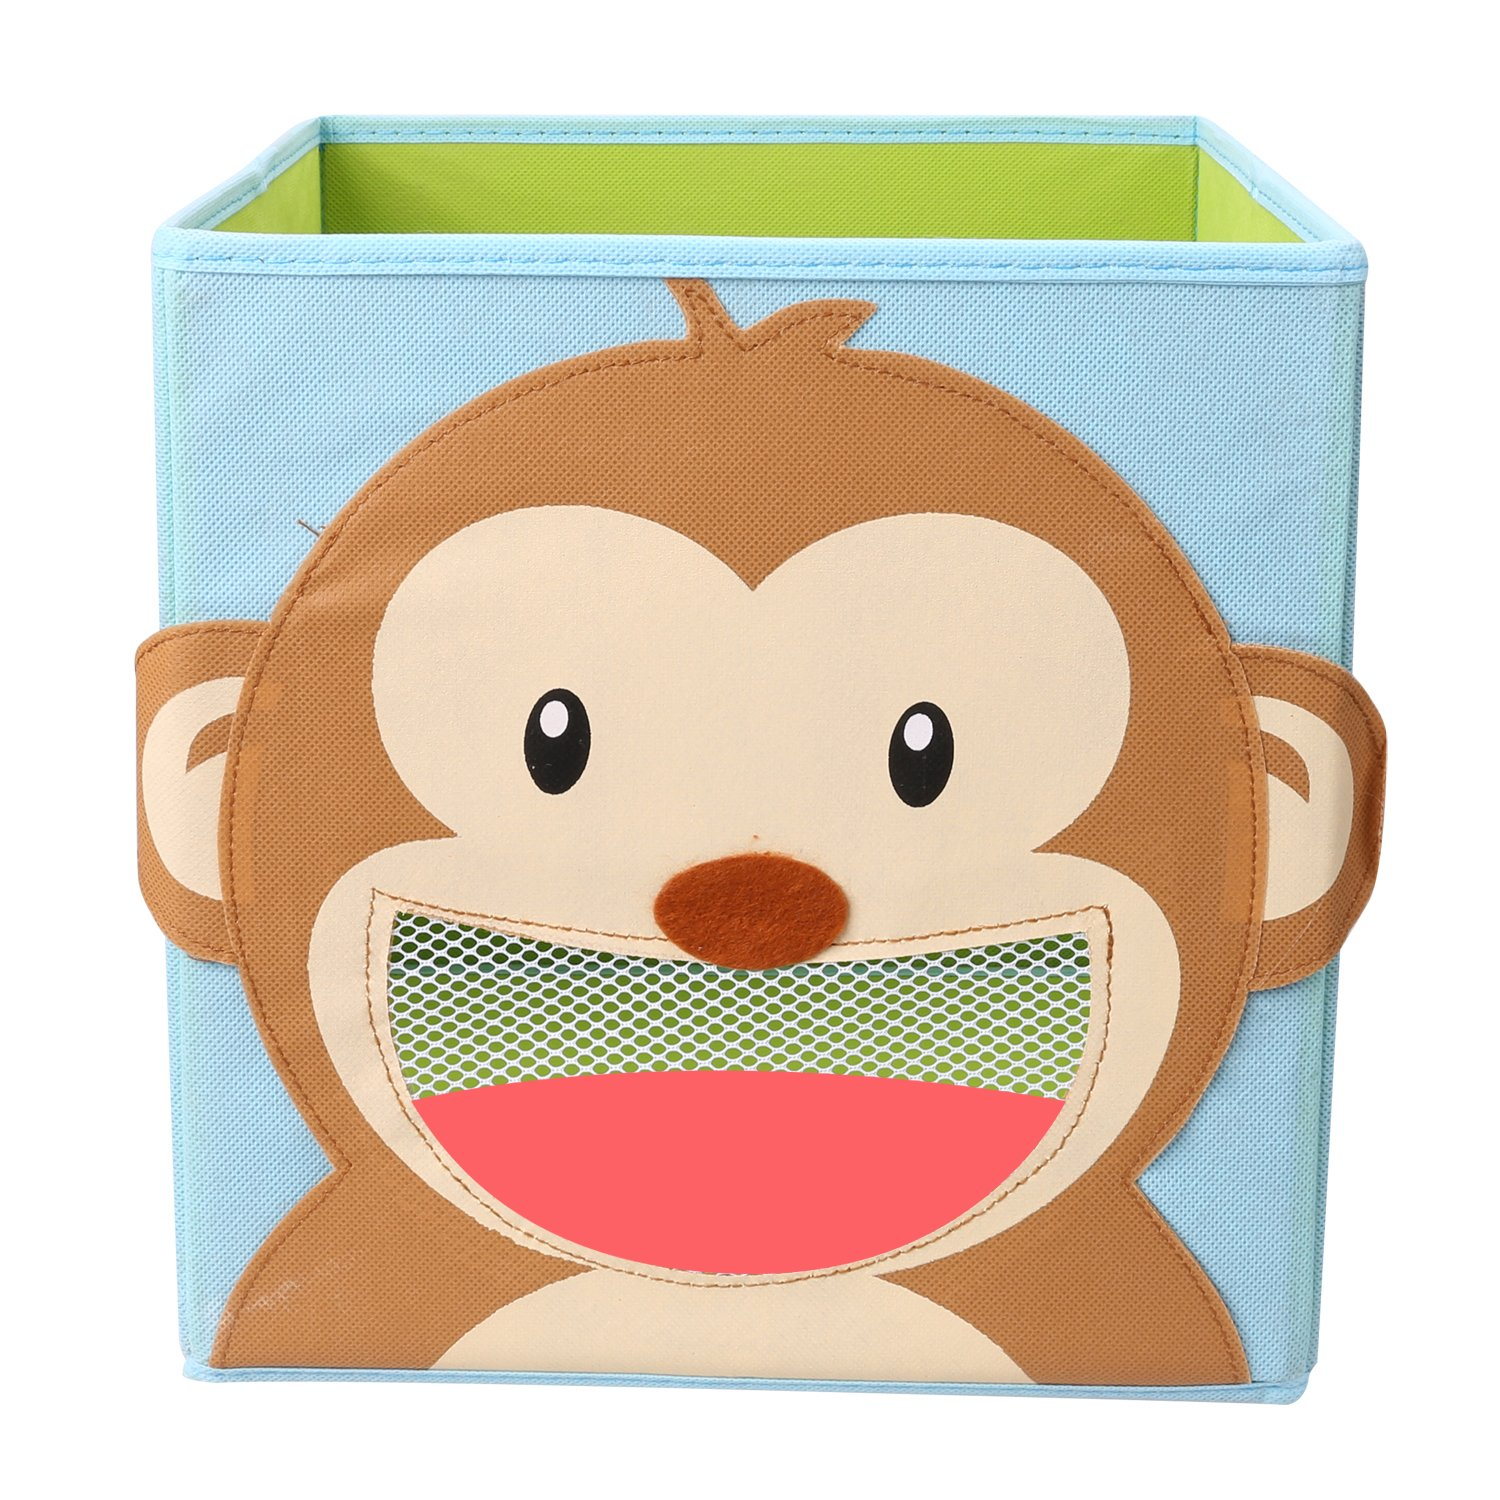 Cute Animal Collapsible Toy Storage Organizer Folding: Amazon.com : Cute Collapsible Storage Bins W/ View Window